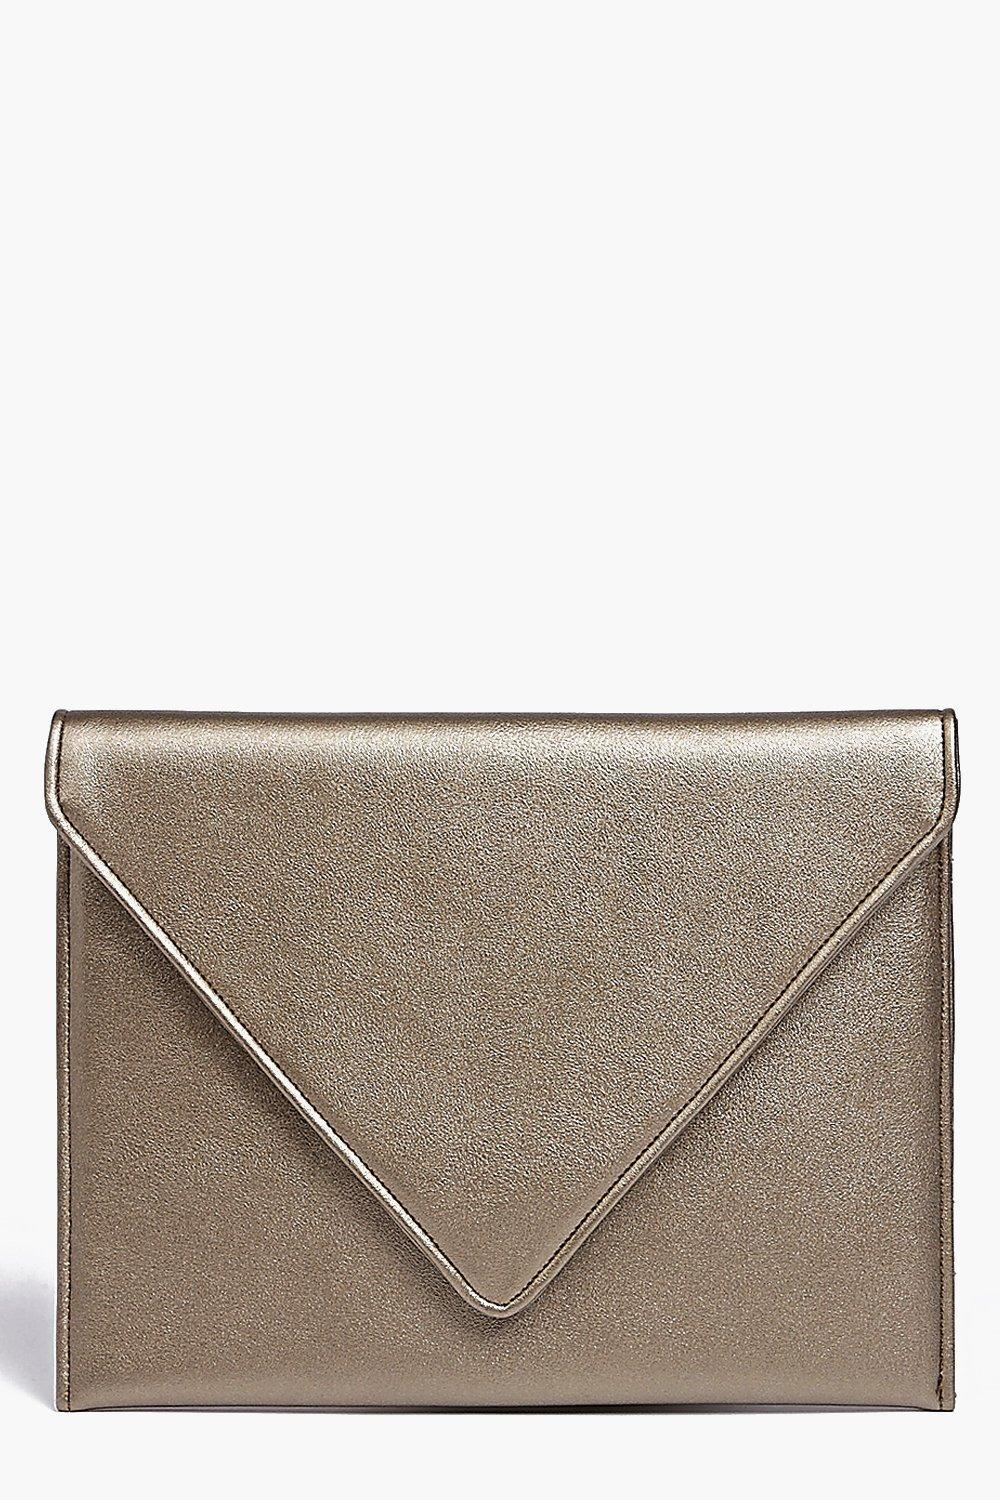 Fold Over Clutch Bag Gold - predominant colour: gold; occasions: evening; type of pattern: standard; style: clutch; length: hand carry; size: small; material: faux leather; pattern: plain; finish: metallic; season: a/w 2016; wardrobe: event